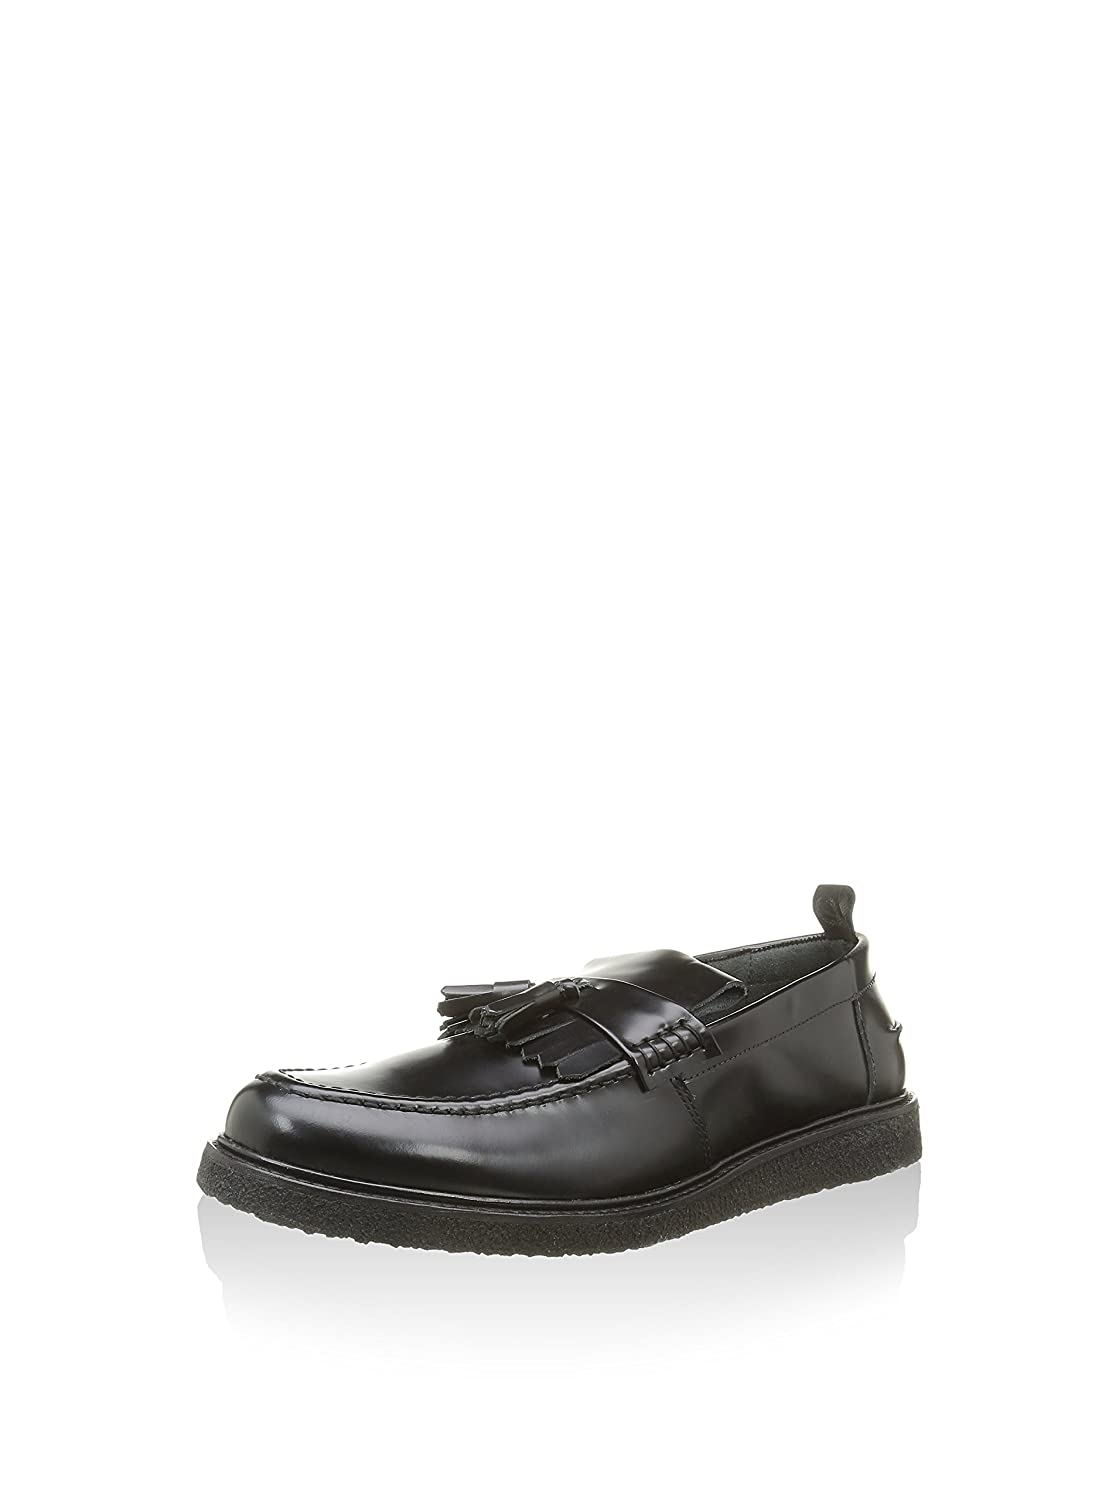 Fred Perry Mocasines Clásicos Fp Hawkhurst Negro EU 42 (UK 8)